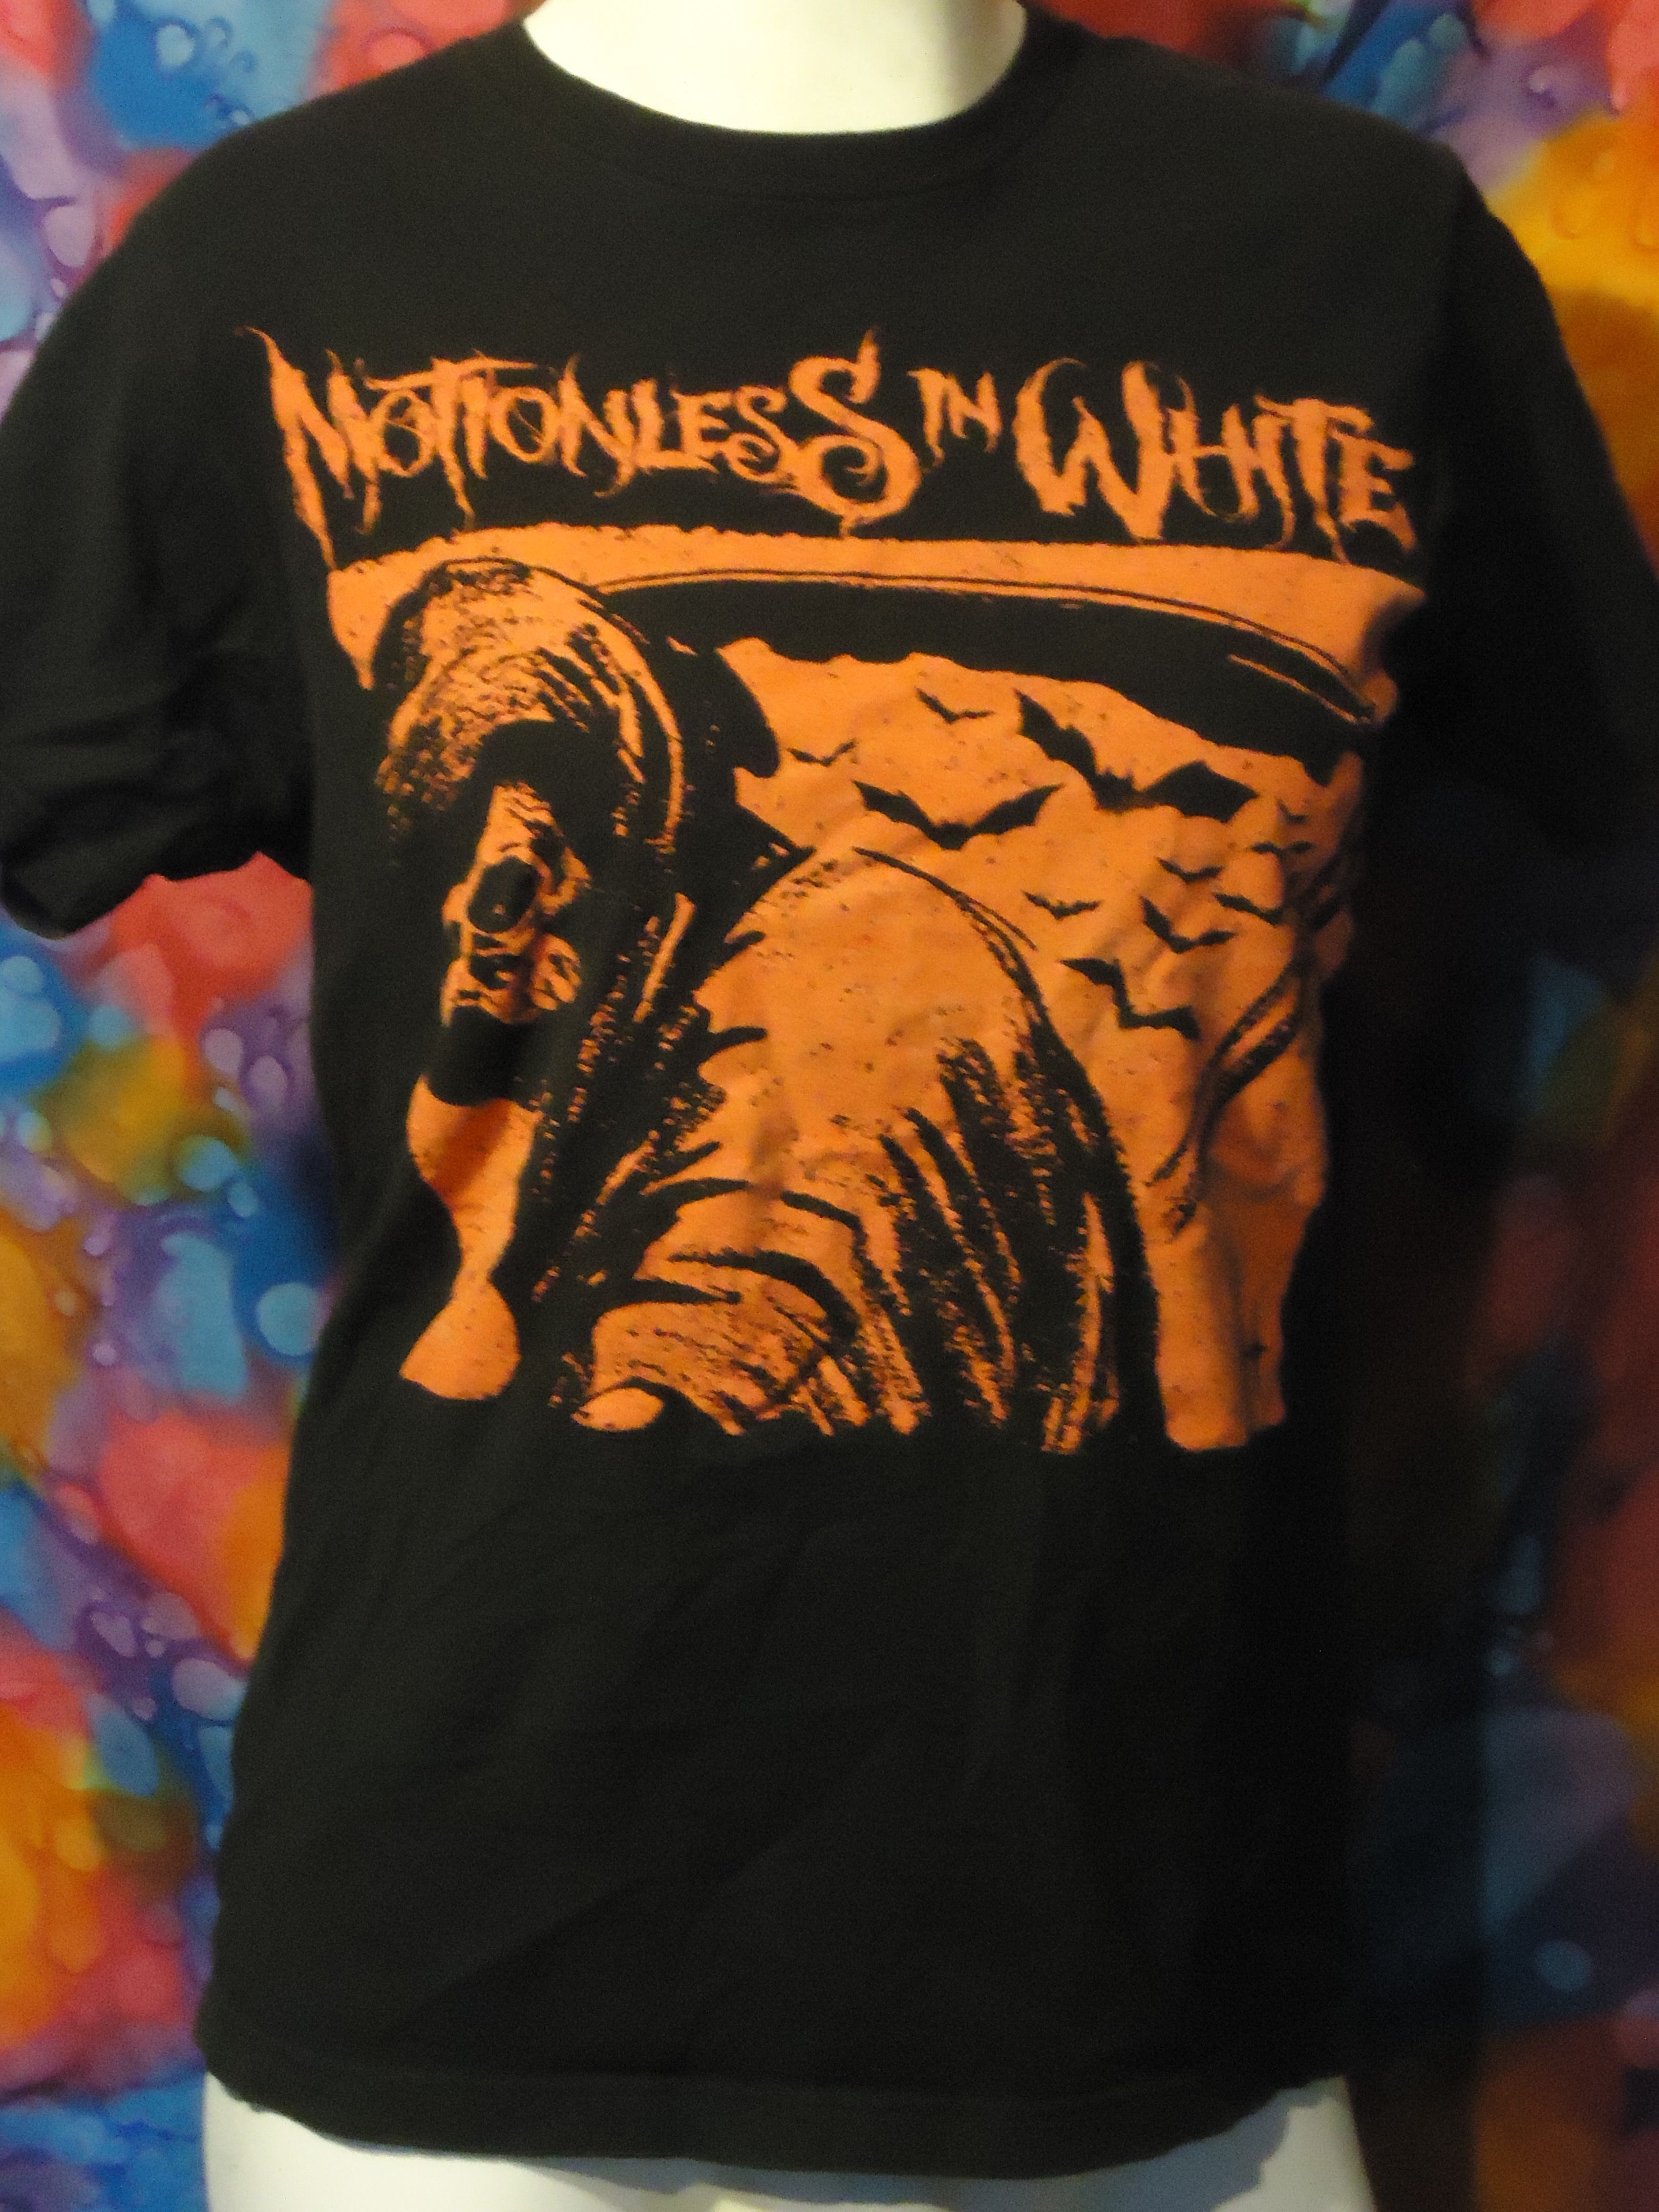 Motionless In White Vintage T Shirt Small Black Vintage Tshirts White Vintage Motionless In White